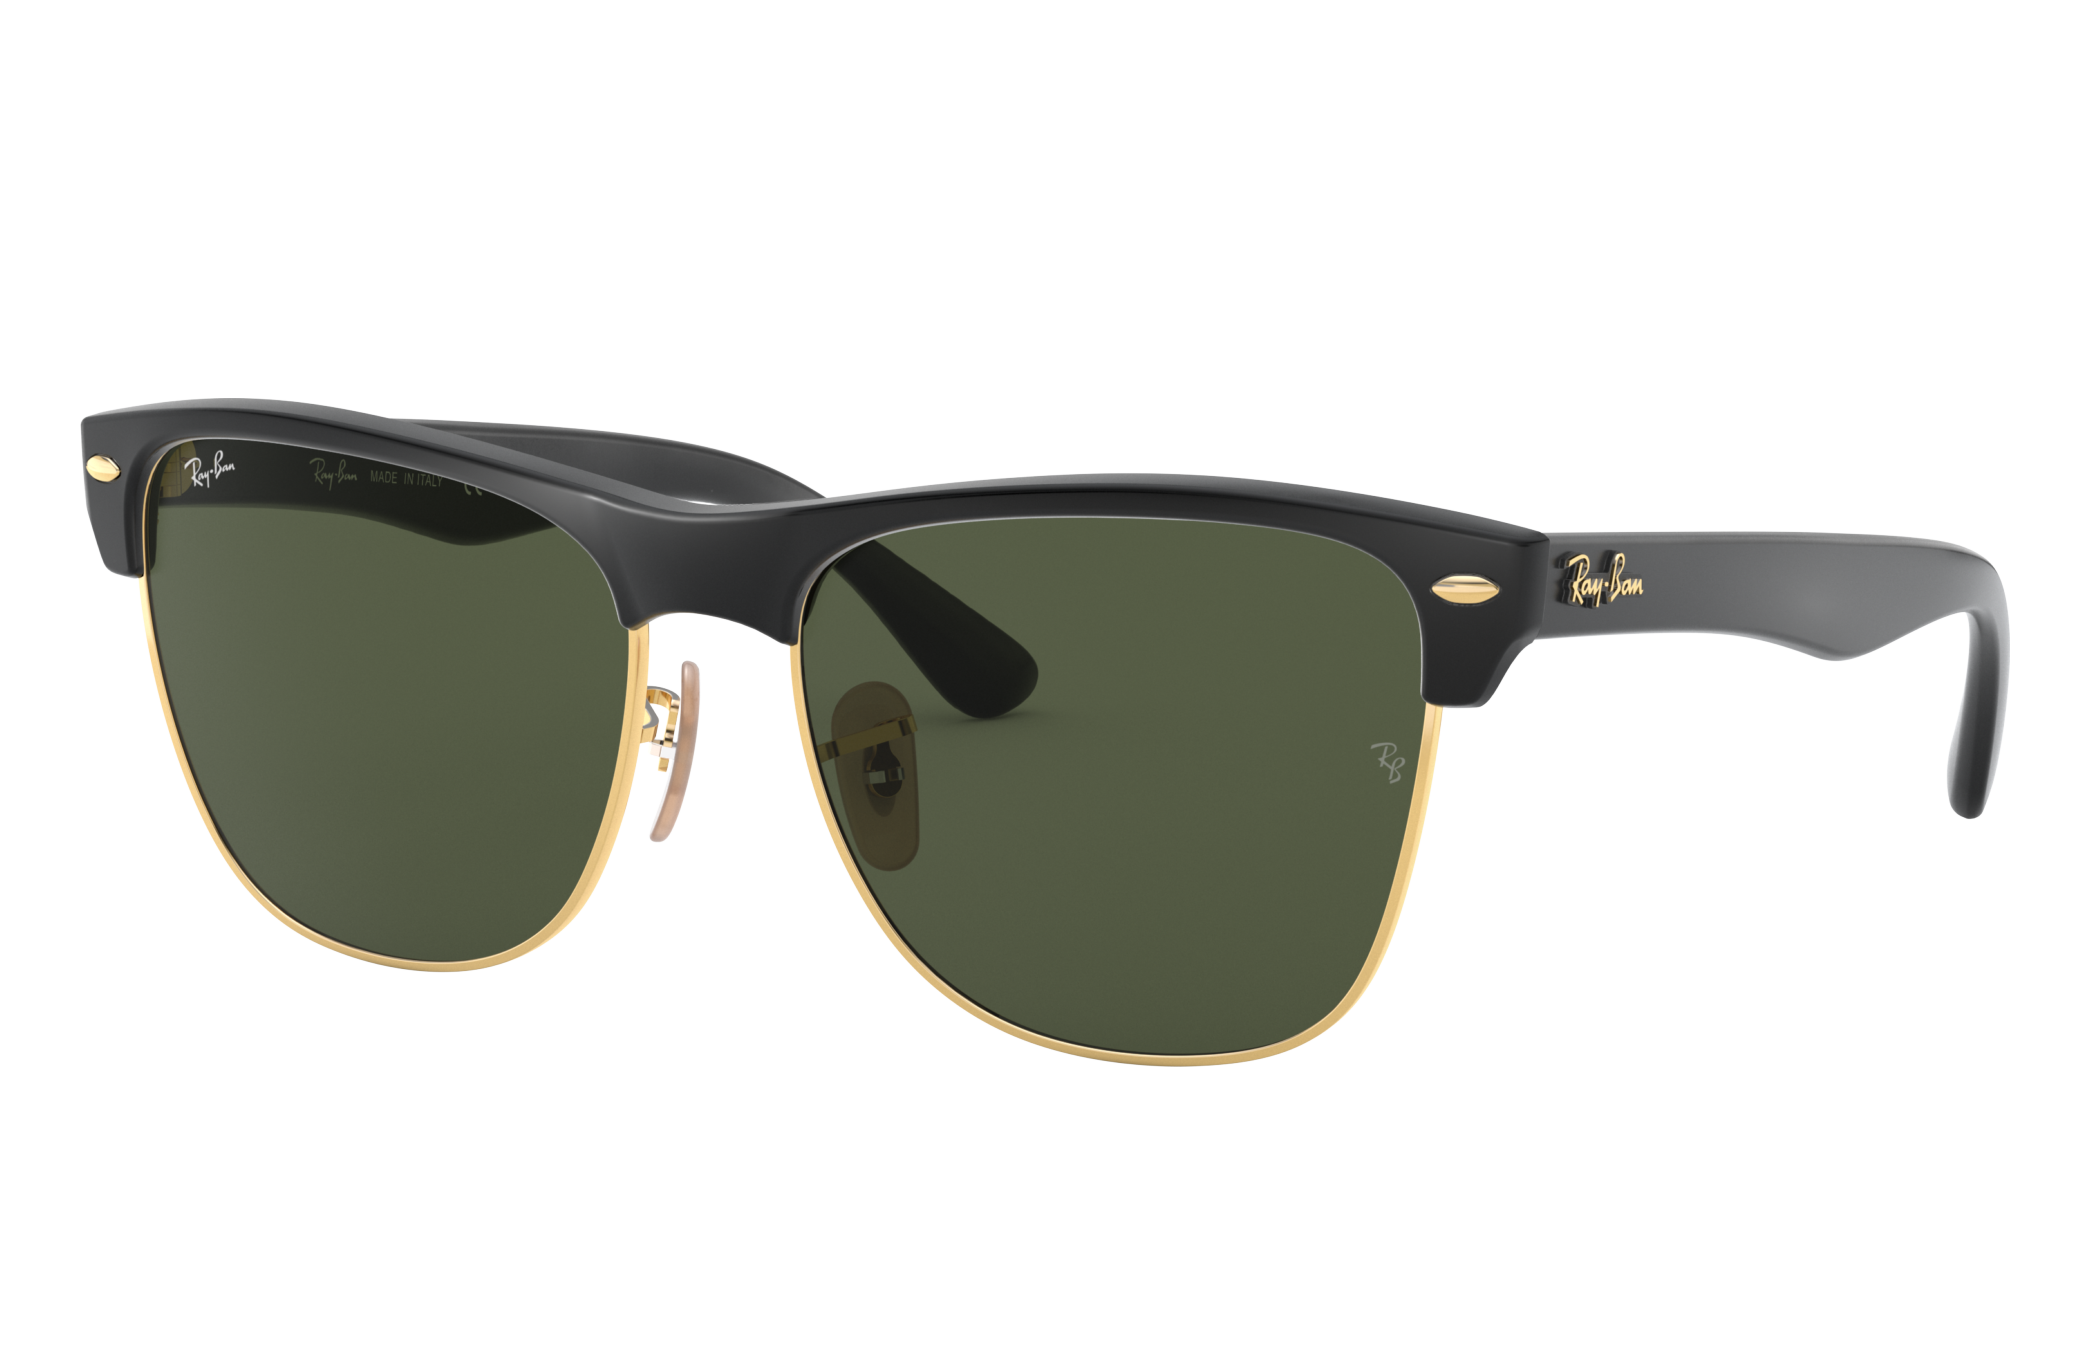 Ray-Ban Clubmaster Oversized Black, Green Lenses - RB4175